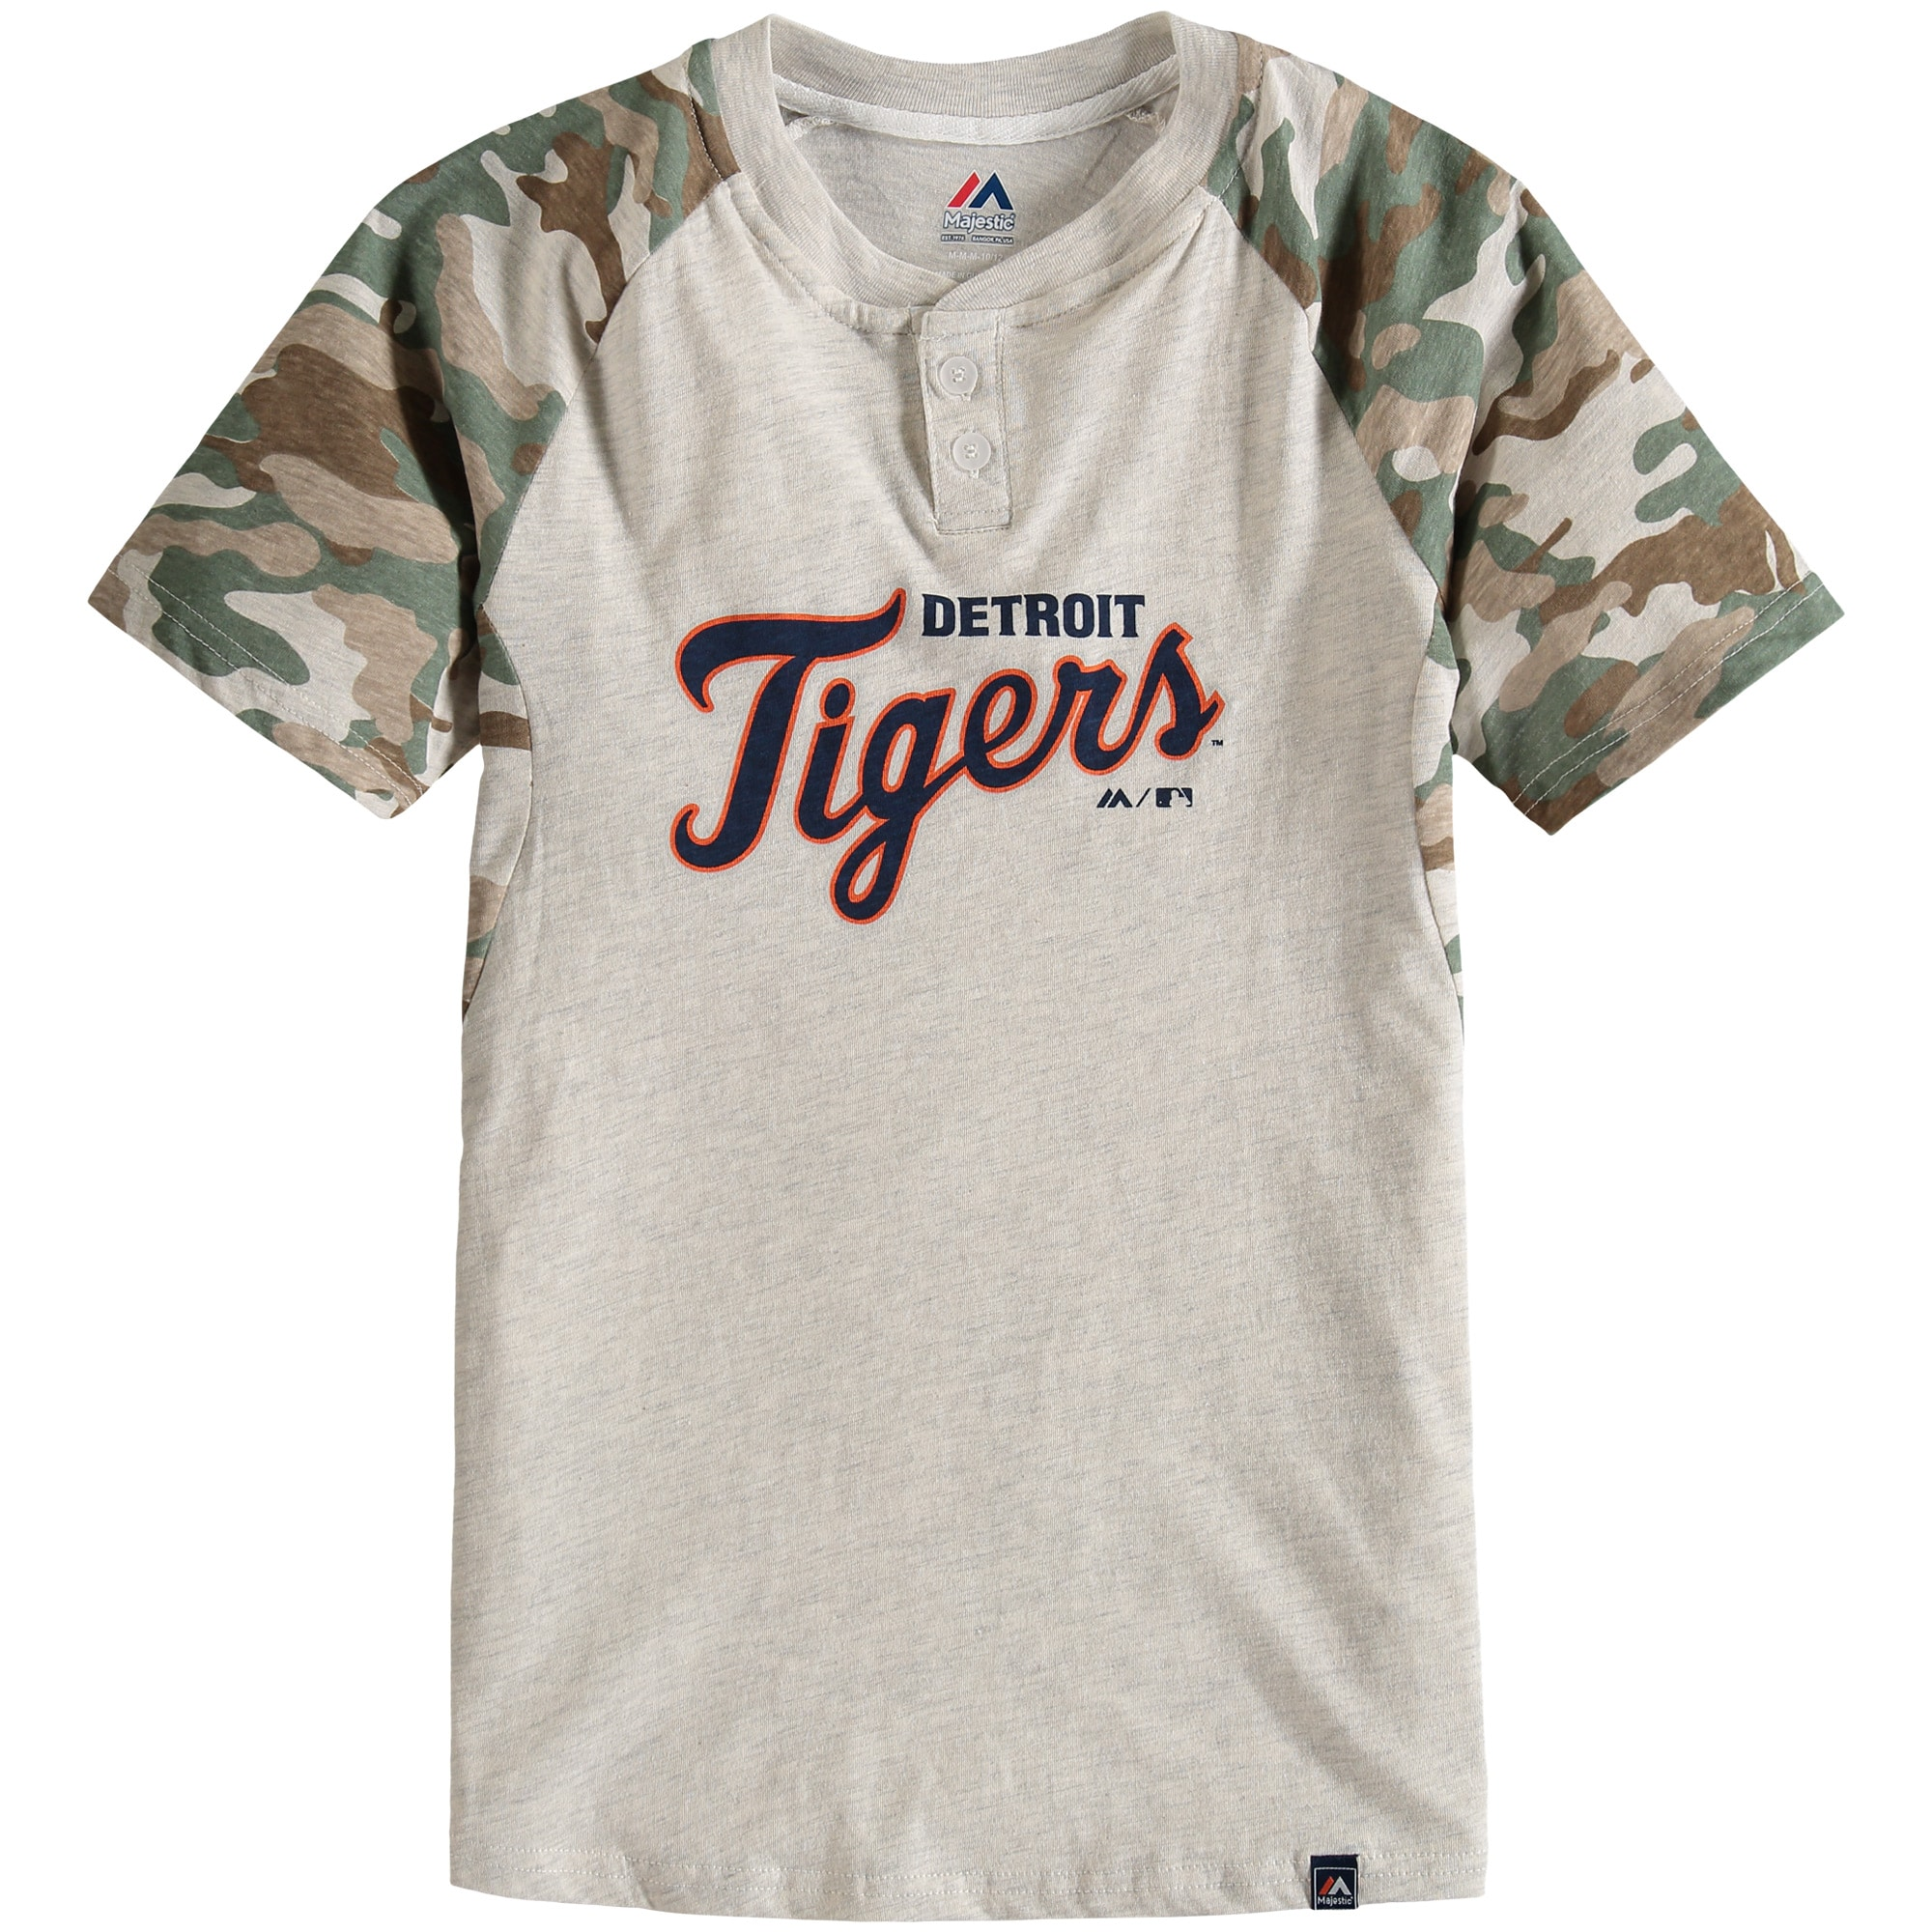 Detroit Tigers Majestic Youth Base Stealer Henley T-Shirt - Cream/Camo